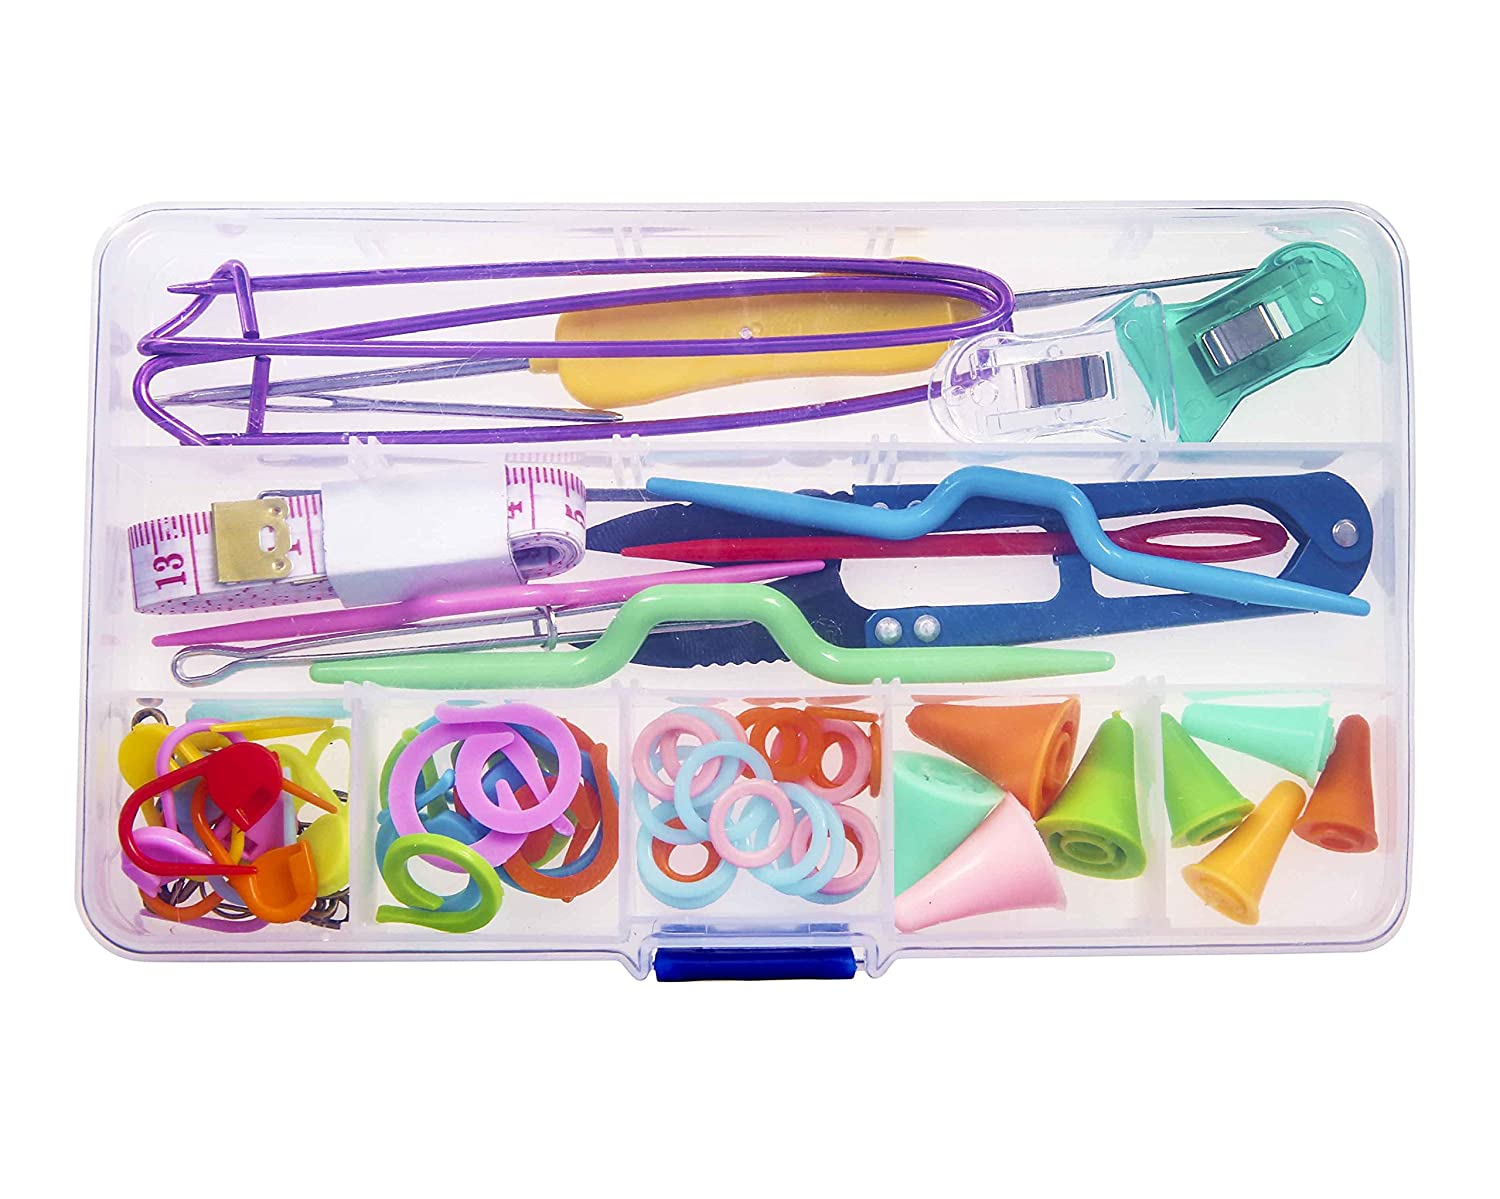 Seawhisper Knitting Notions and Supplies with Storage Case Knitting Stitch Holders Counter 4336923998